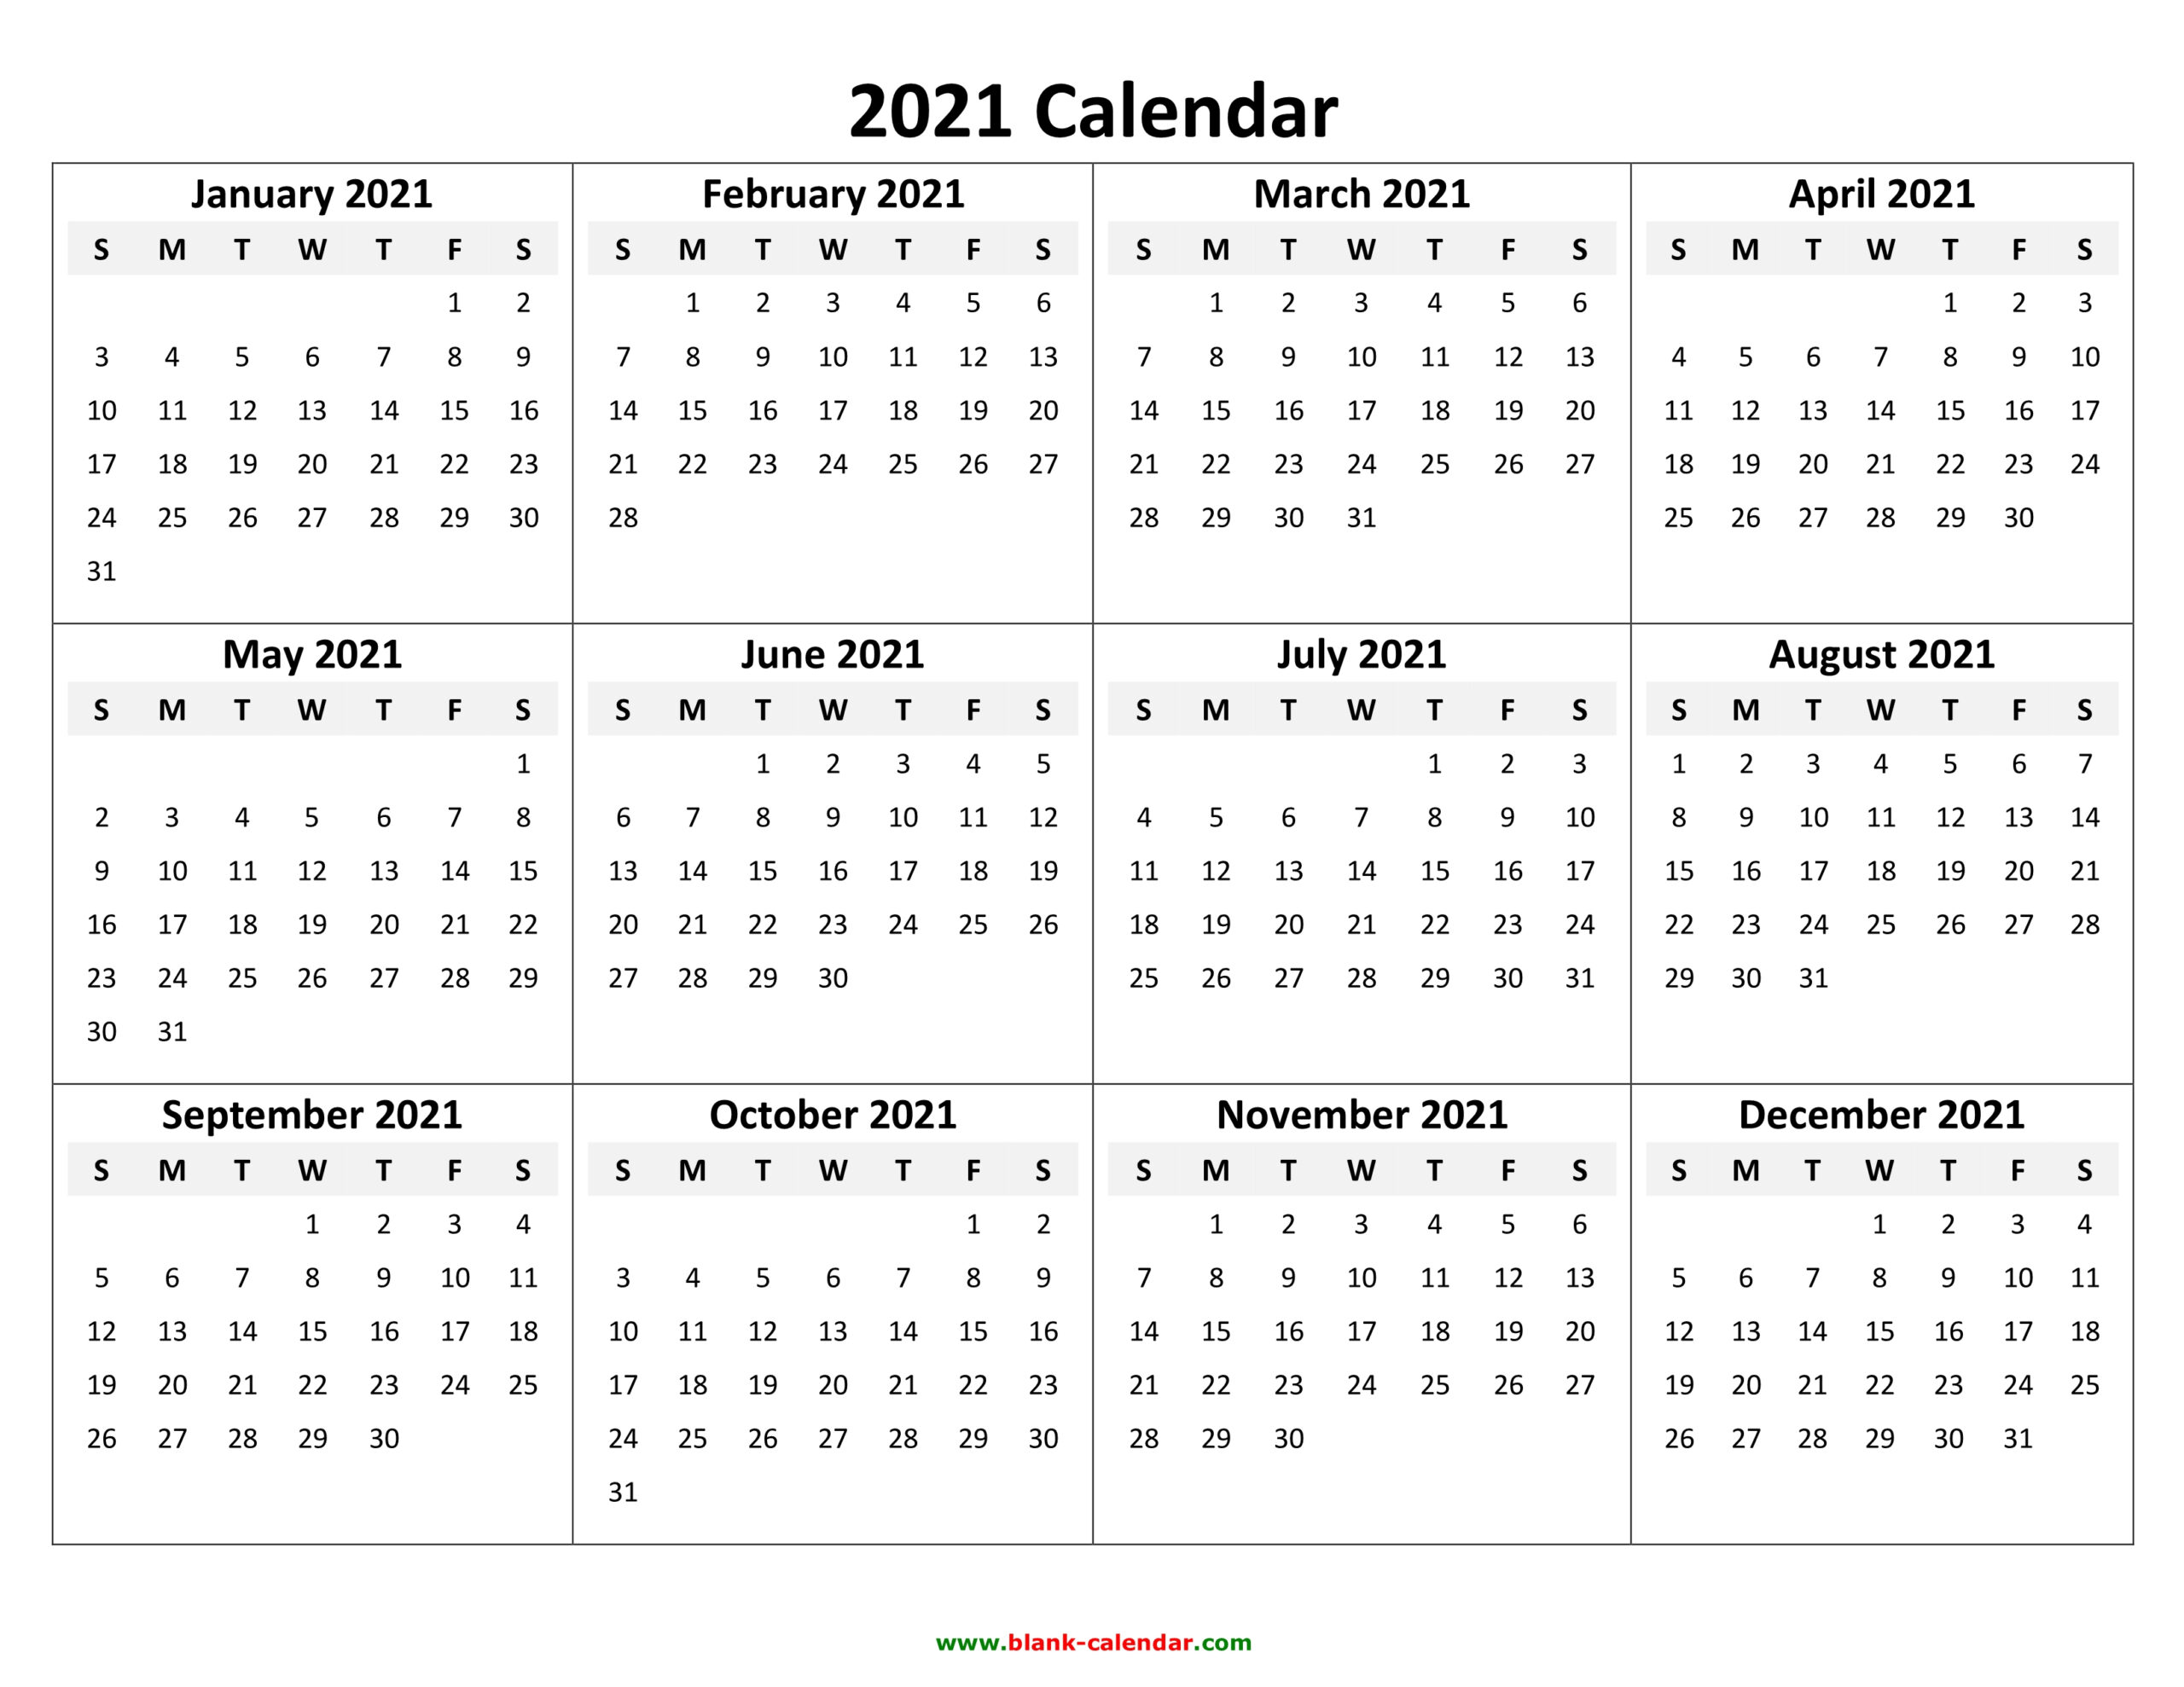 Yearly Calendar 2021 | Free Download And Print within 2021-2021 Monthly Planner: 2 Years